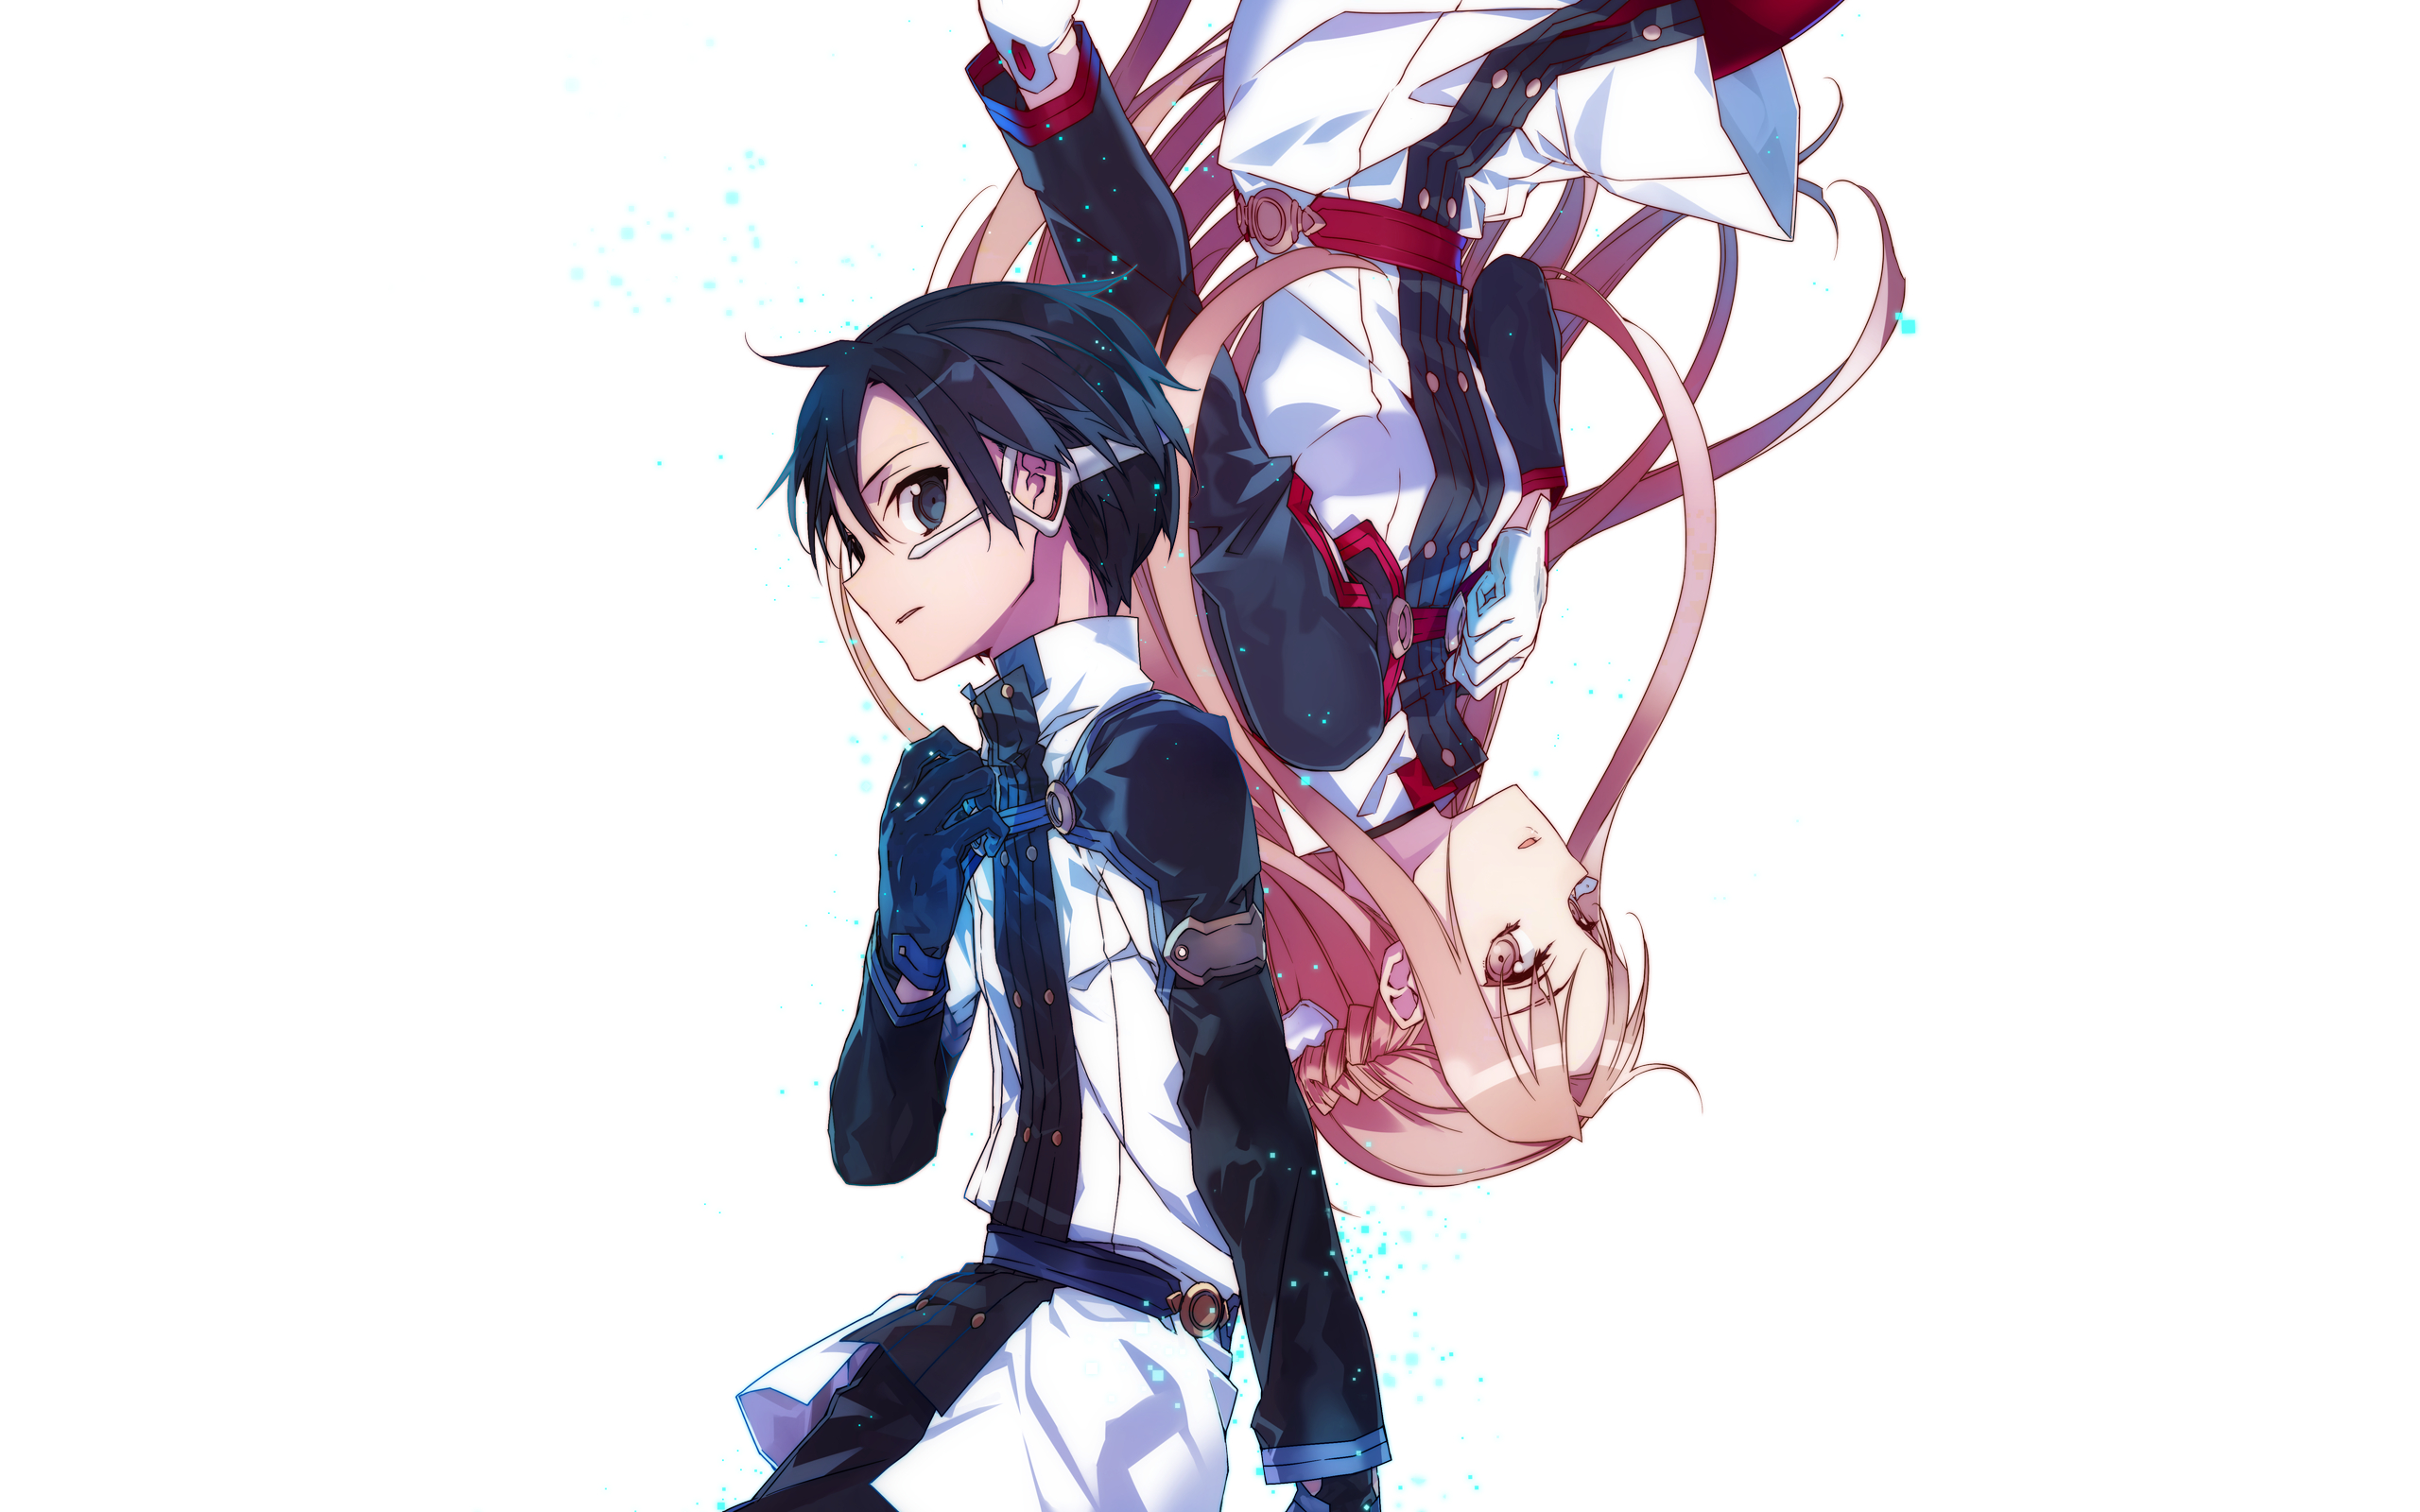 Sword Art Online Movie Ordinal Scale Hd 990248 Png Images Pngio